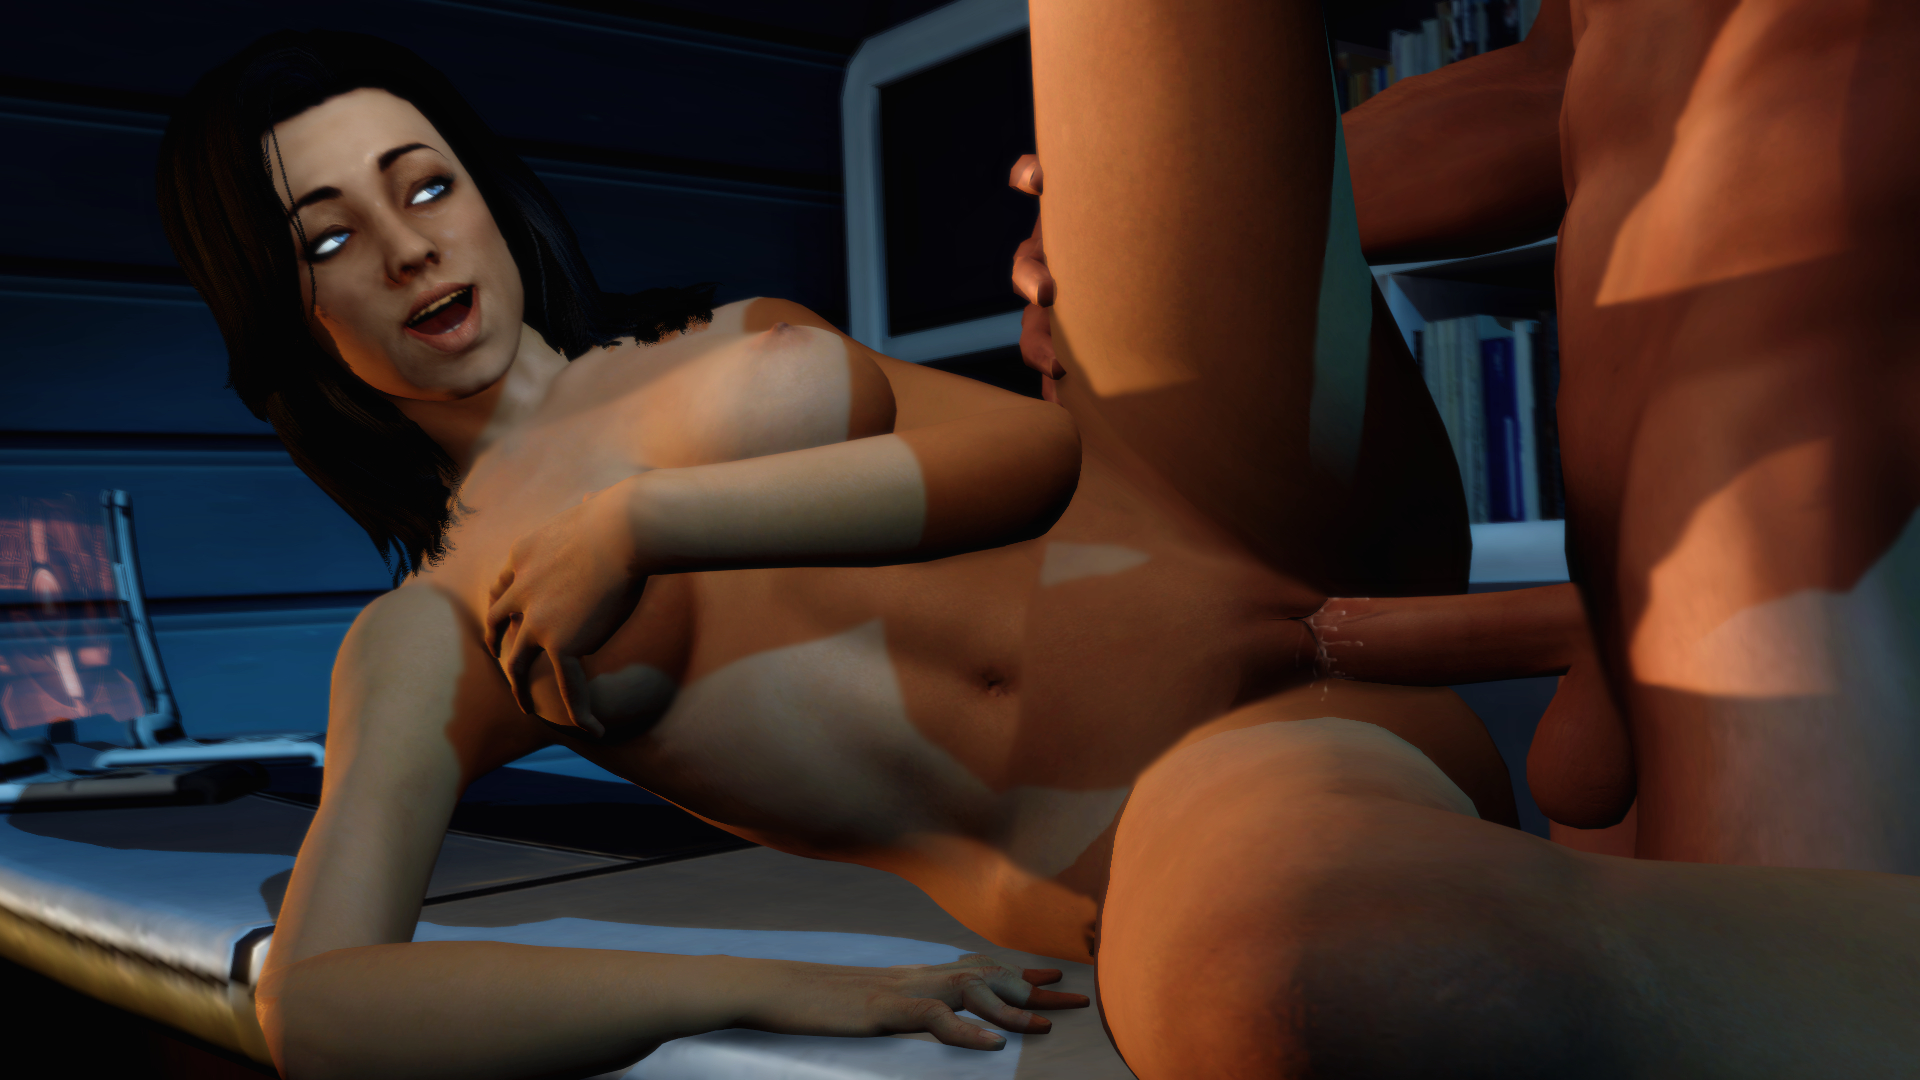 Naked porn cartoon animation porncraft images